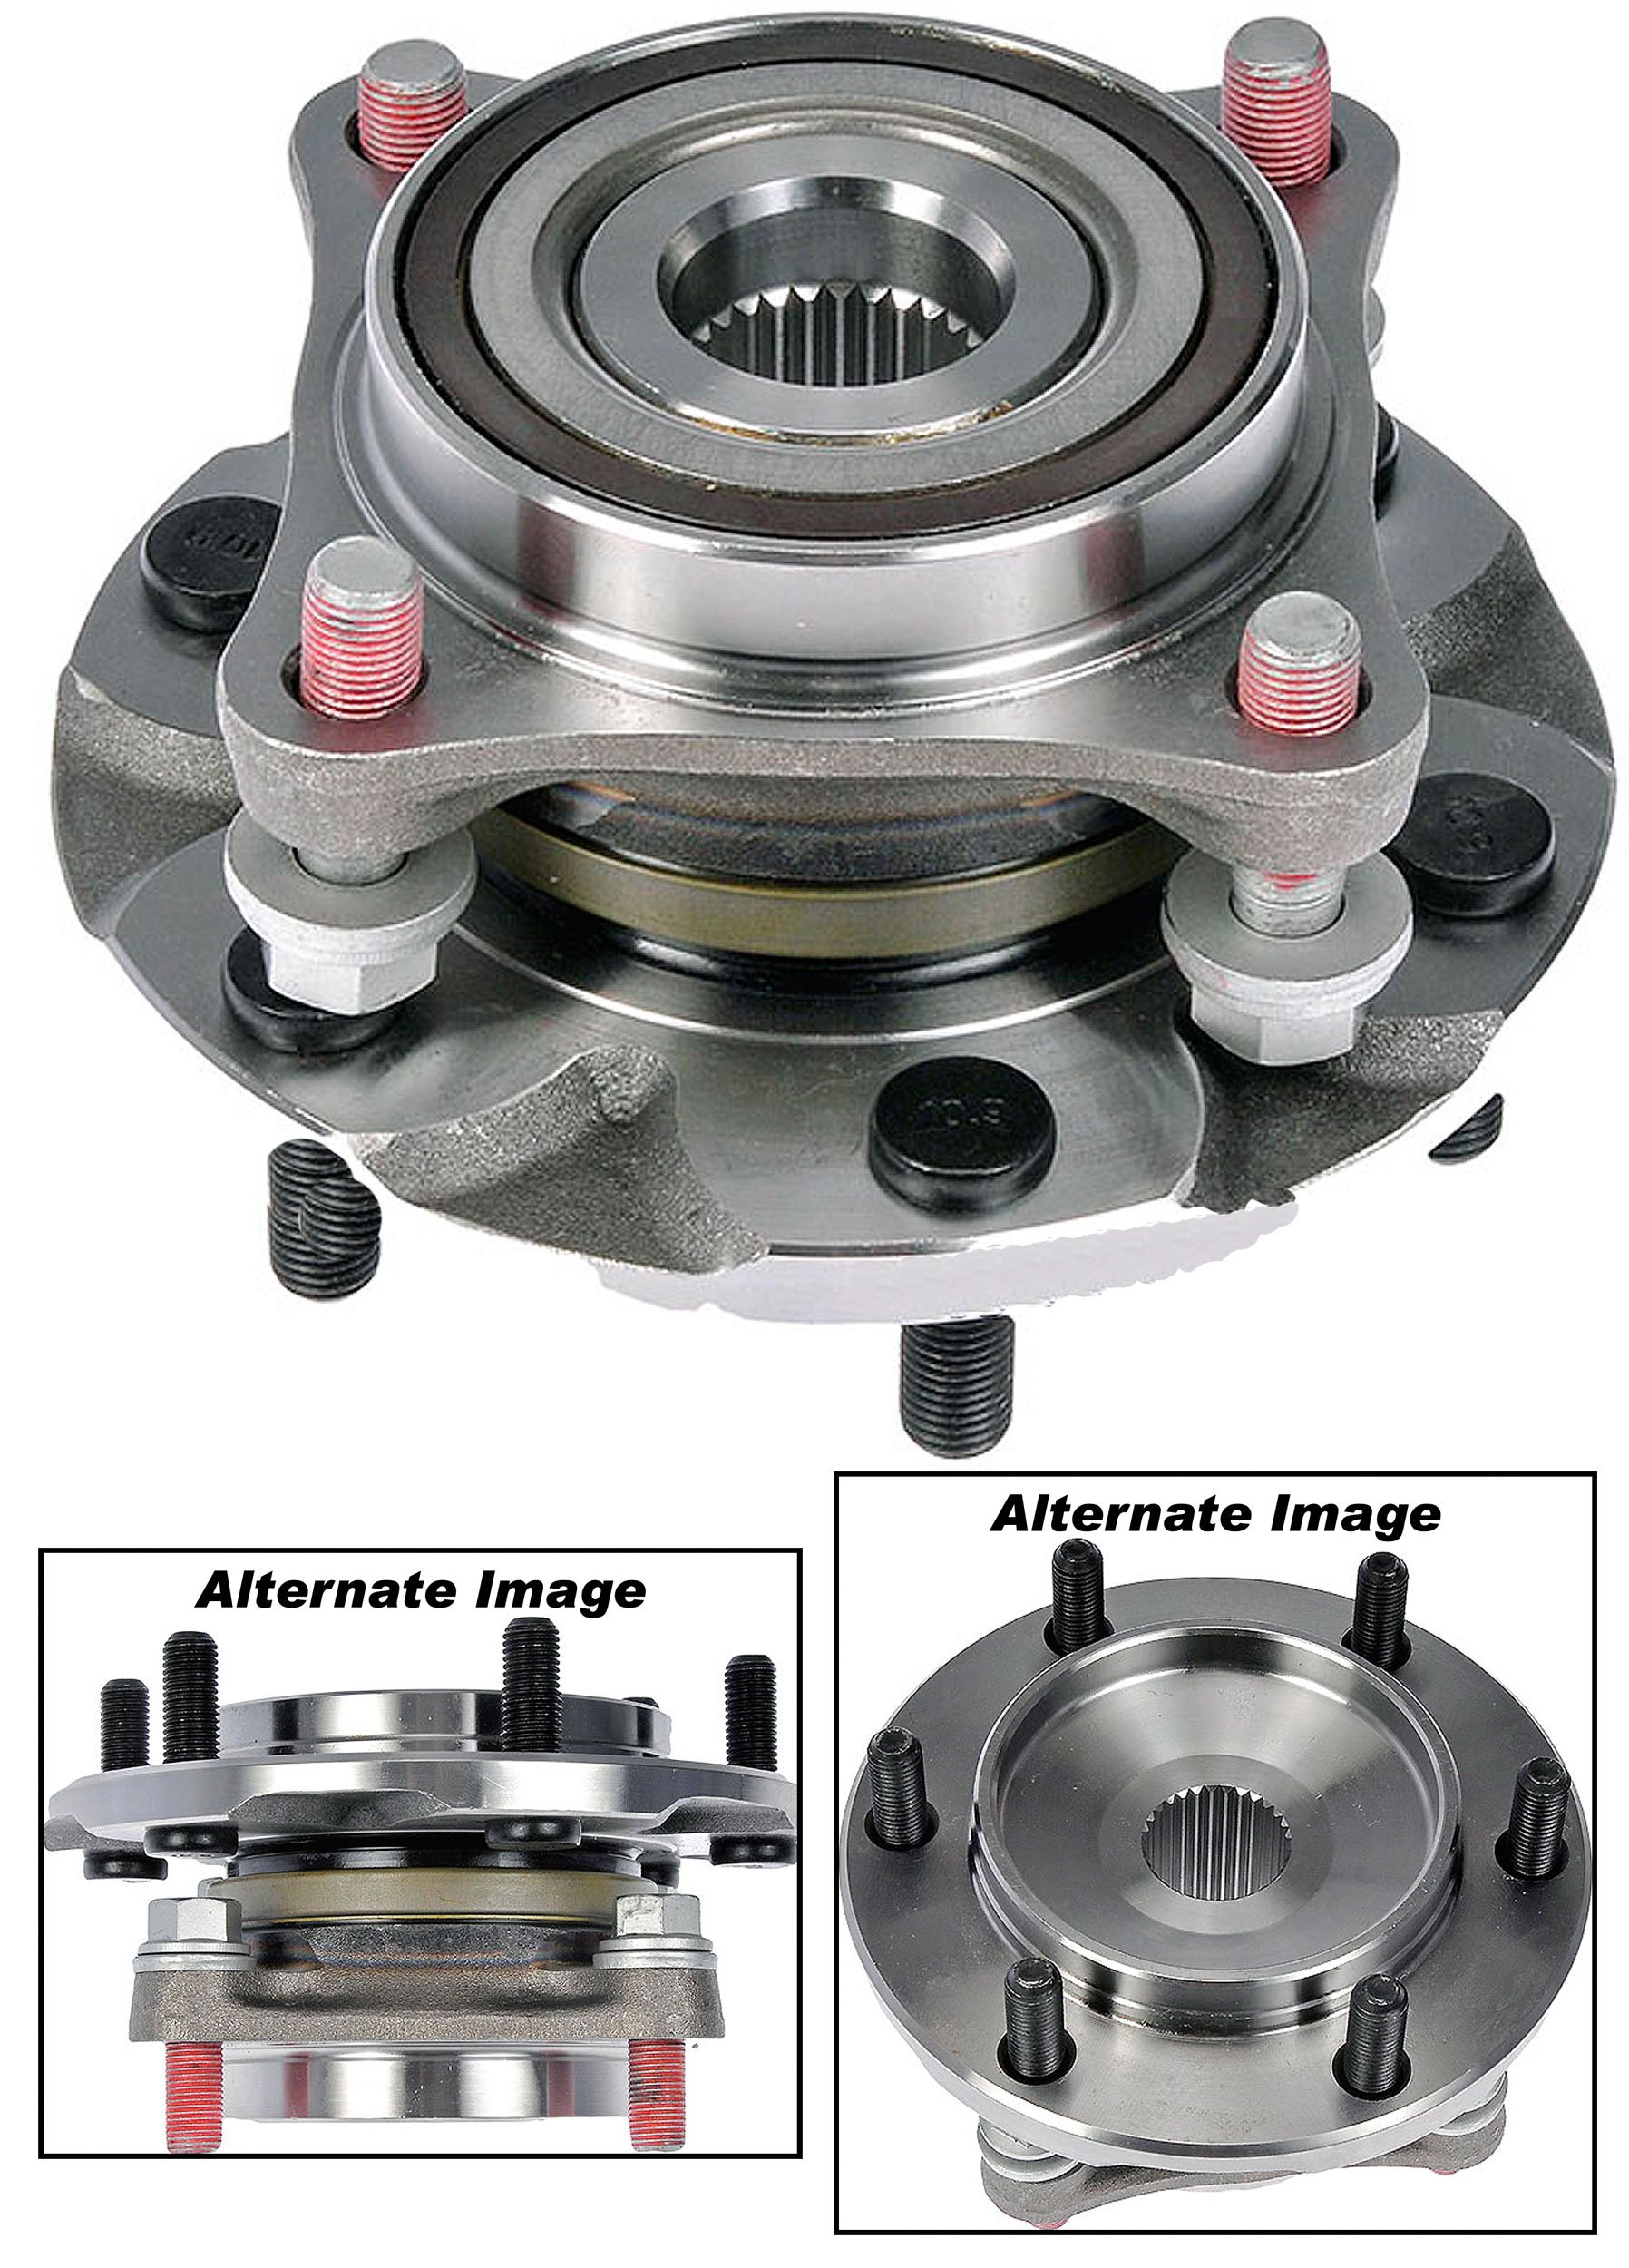 APDTY 515040 Wheel Hub Bearing Bolt On Assembly w/ Studs Fits Front Left or Right 2010-2014 Lexus GX460 2003-2009 GX470 2003-2013 4Runner 2007-2013 FJ Cruiser 2005-2012 Tacoma (AWD 4WD Models Only) by APDTY